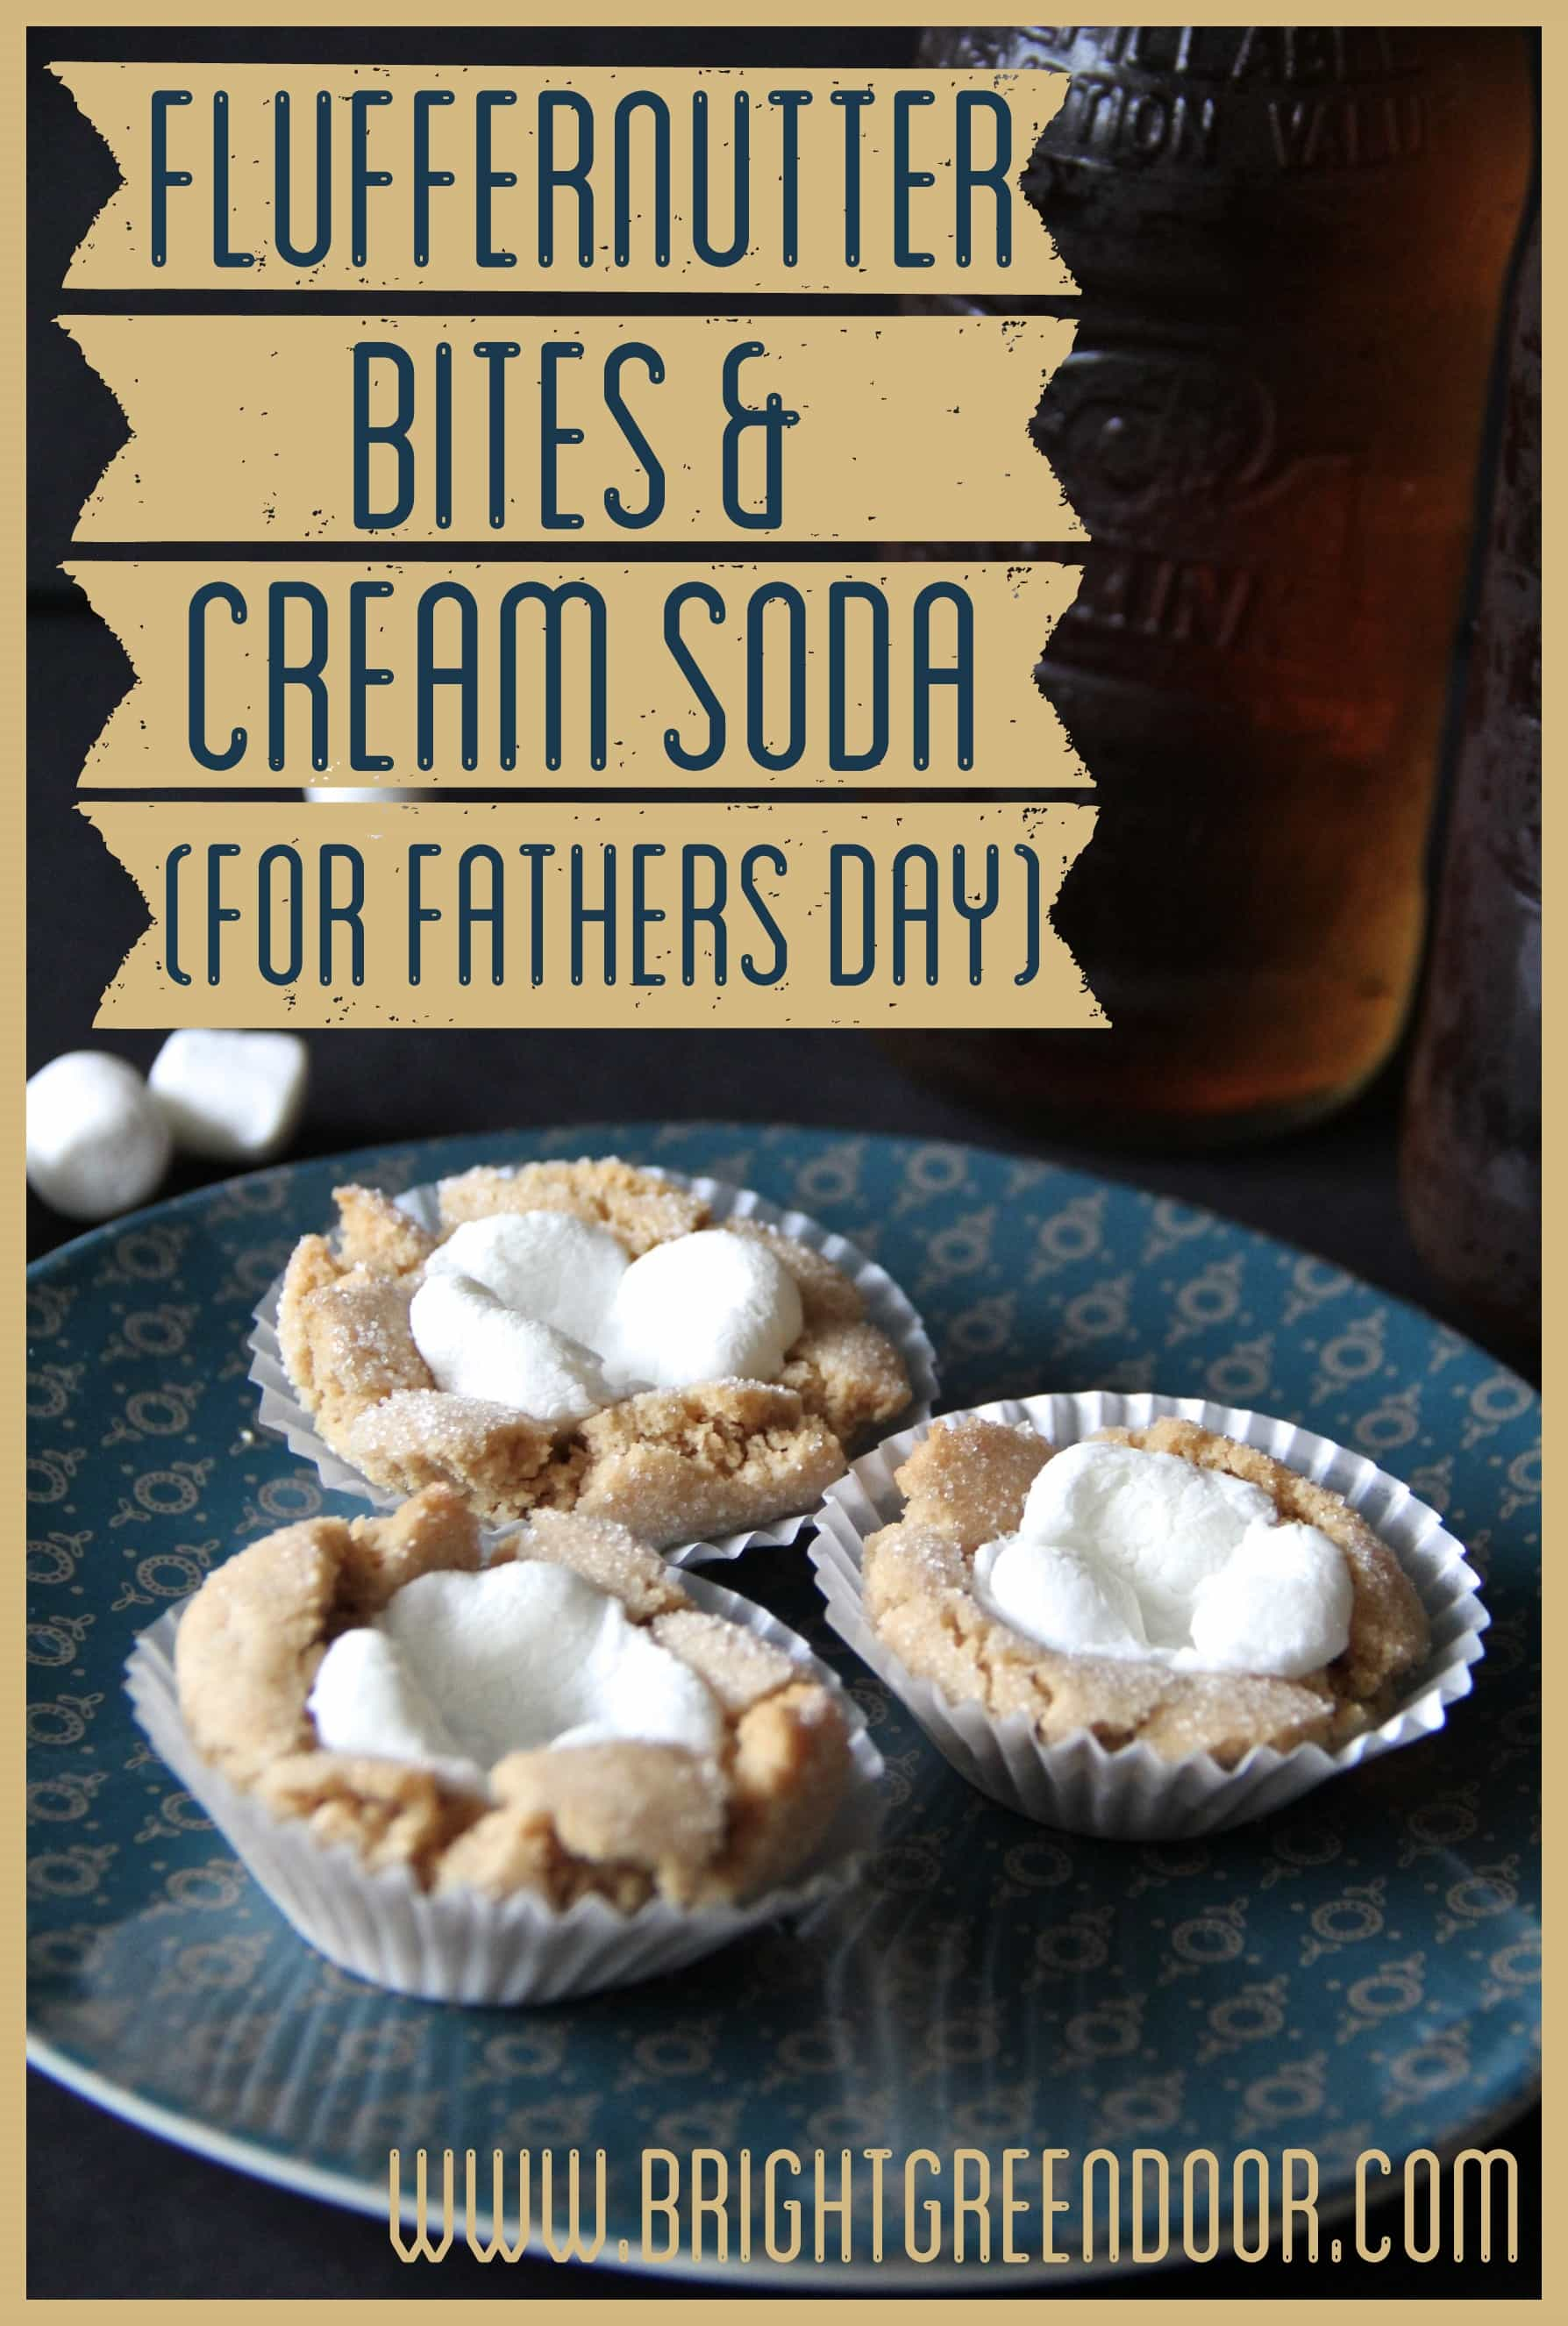 Fluffernutter Bites and Cream Soda for Father's Day